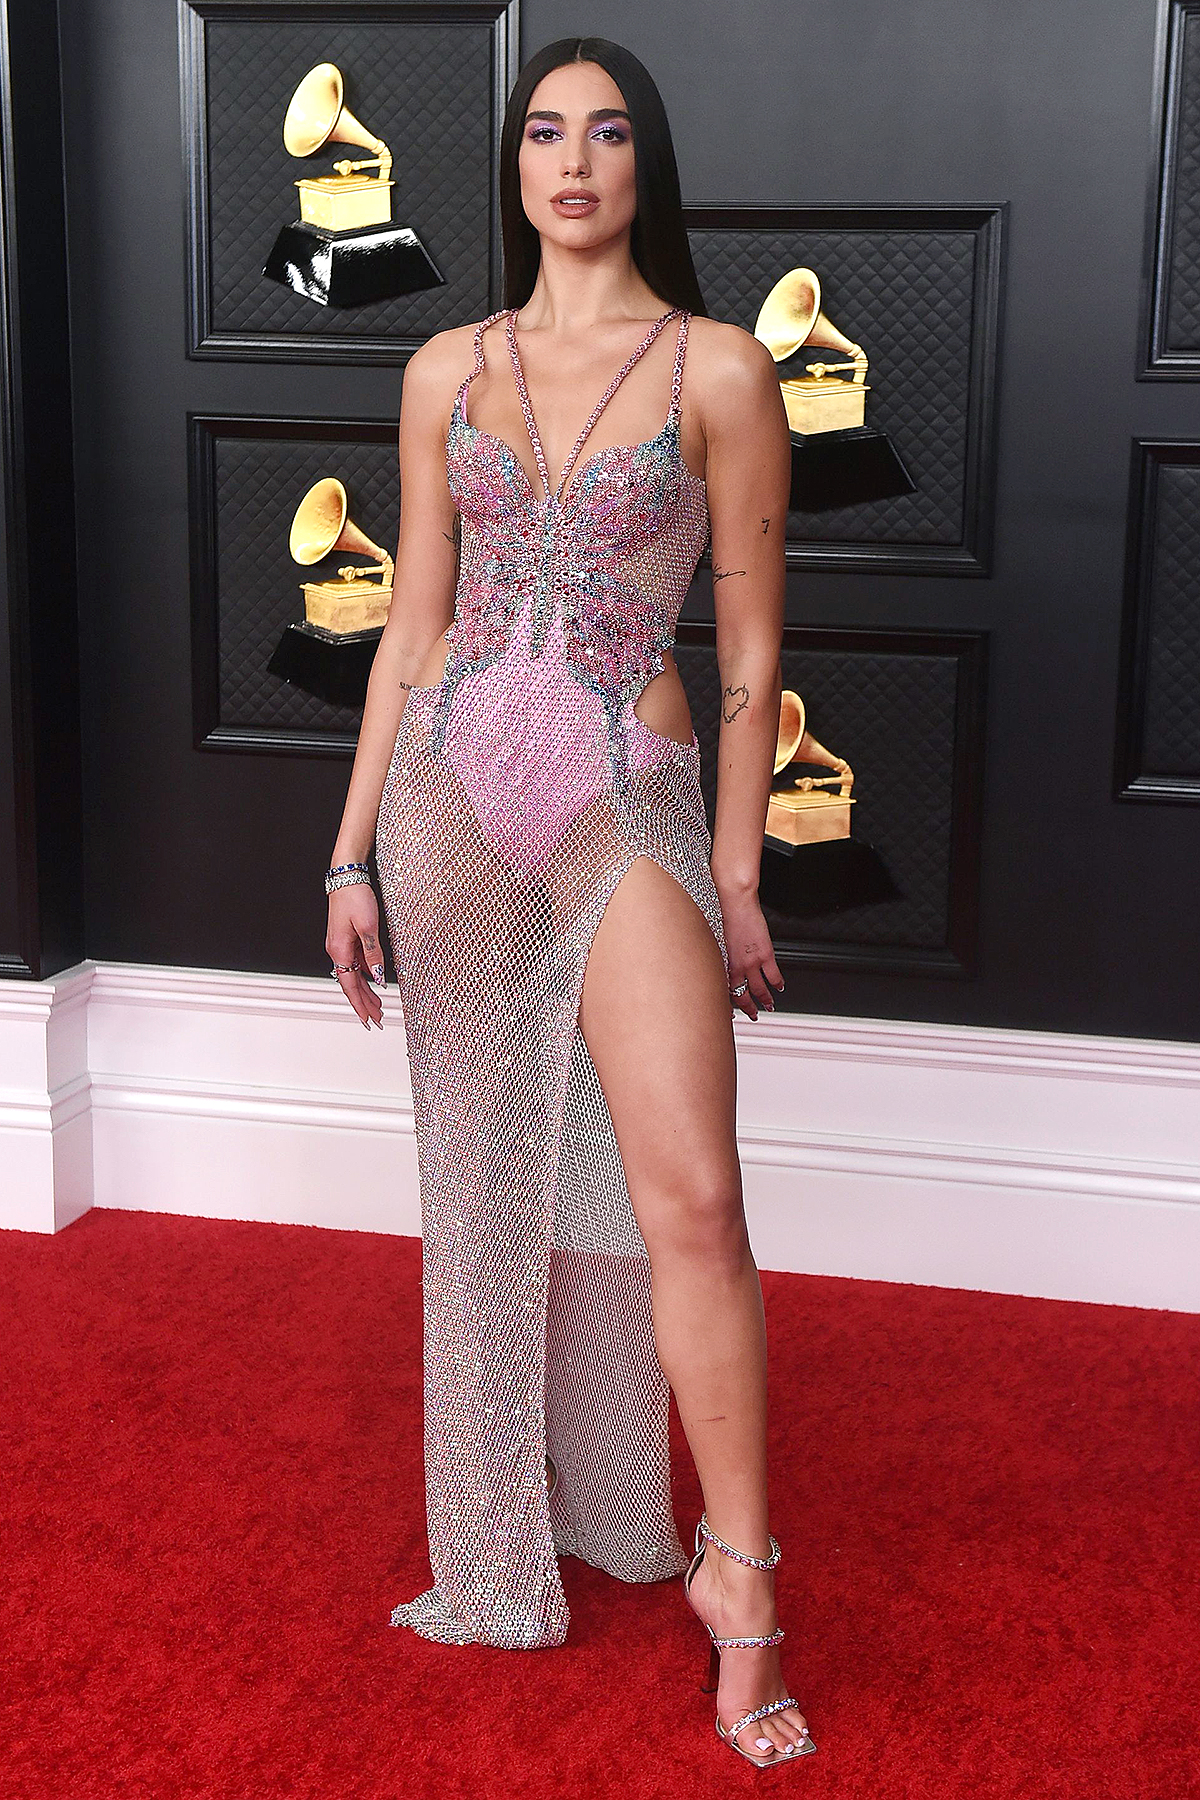 Dua Lipa arrives at the 63rd annual Grammy Awards at the Los Angeles Convention Center on 63rd Annual Grammy Awards - Arrivals, Los Angeles, United States - 14 Mar 2021